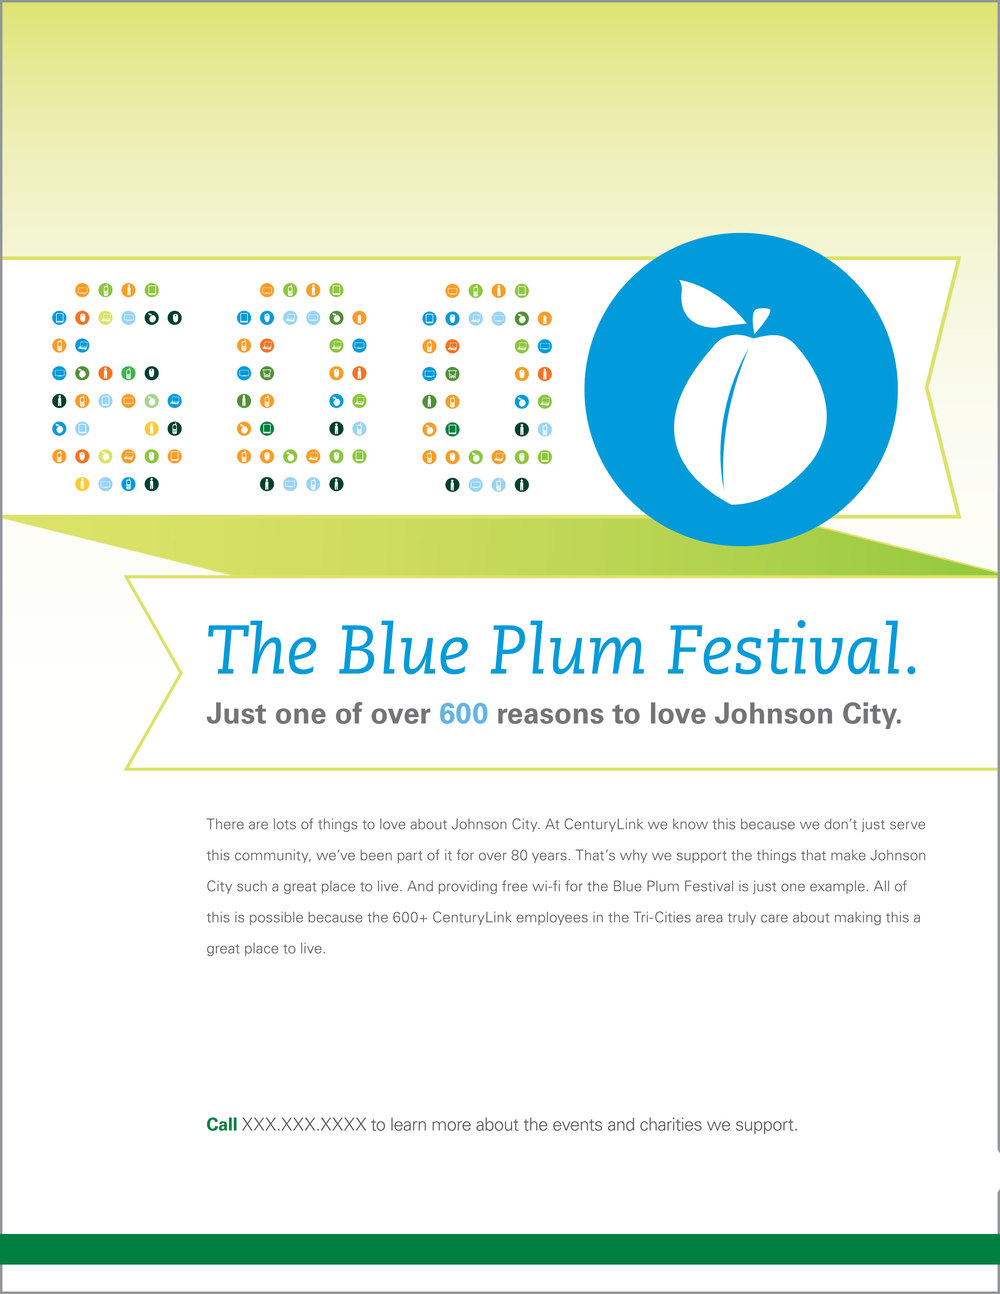 I created a flyer for the Blue Plum Festival describing how supportive the community CentryLink is.